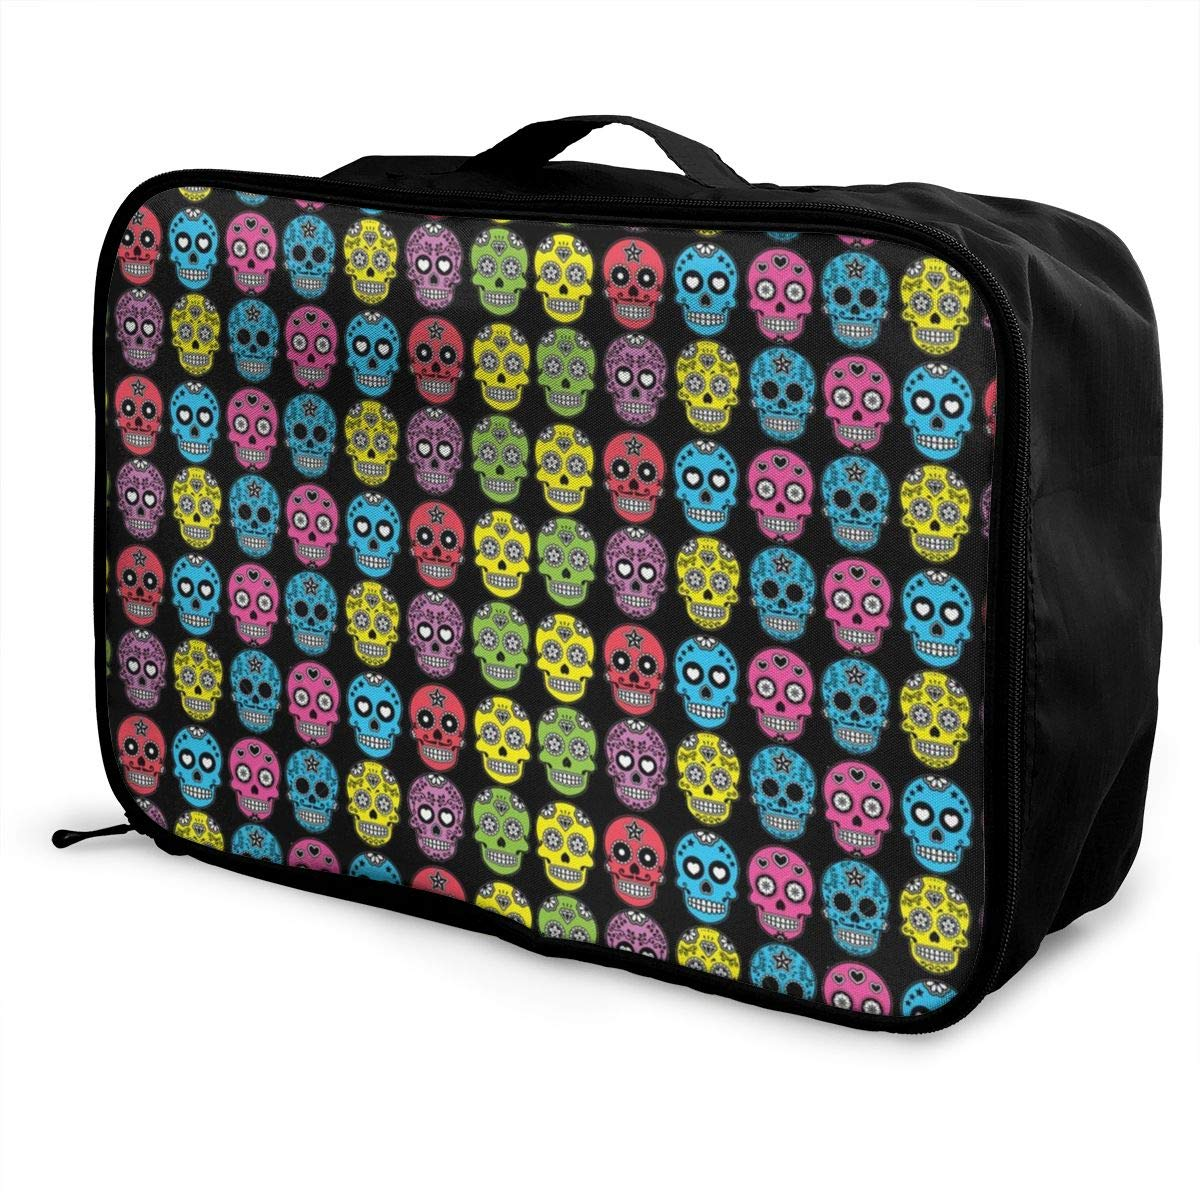 Travel Duffle Bag Mexican Sugar Skull Weekend Bags Water Resistant Foldable Nylon Luggage Duffel Bag For Sports Camping Hiking Vacation Party Holiday Gym